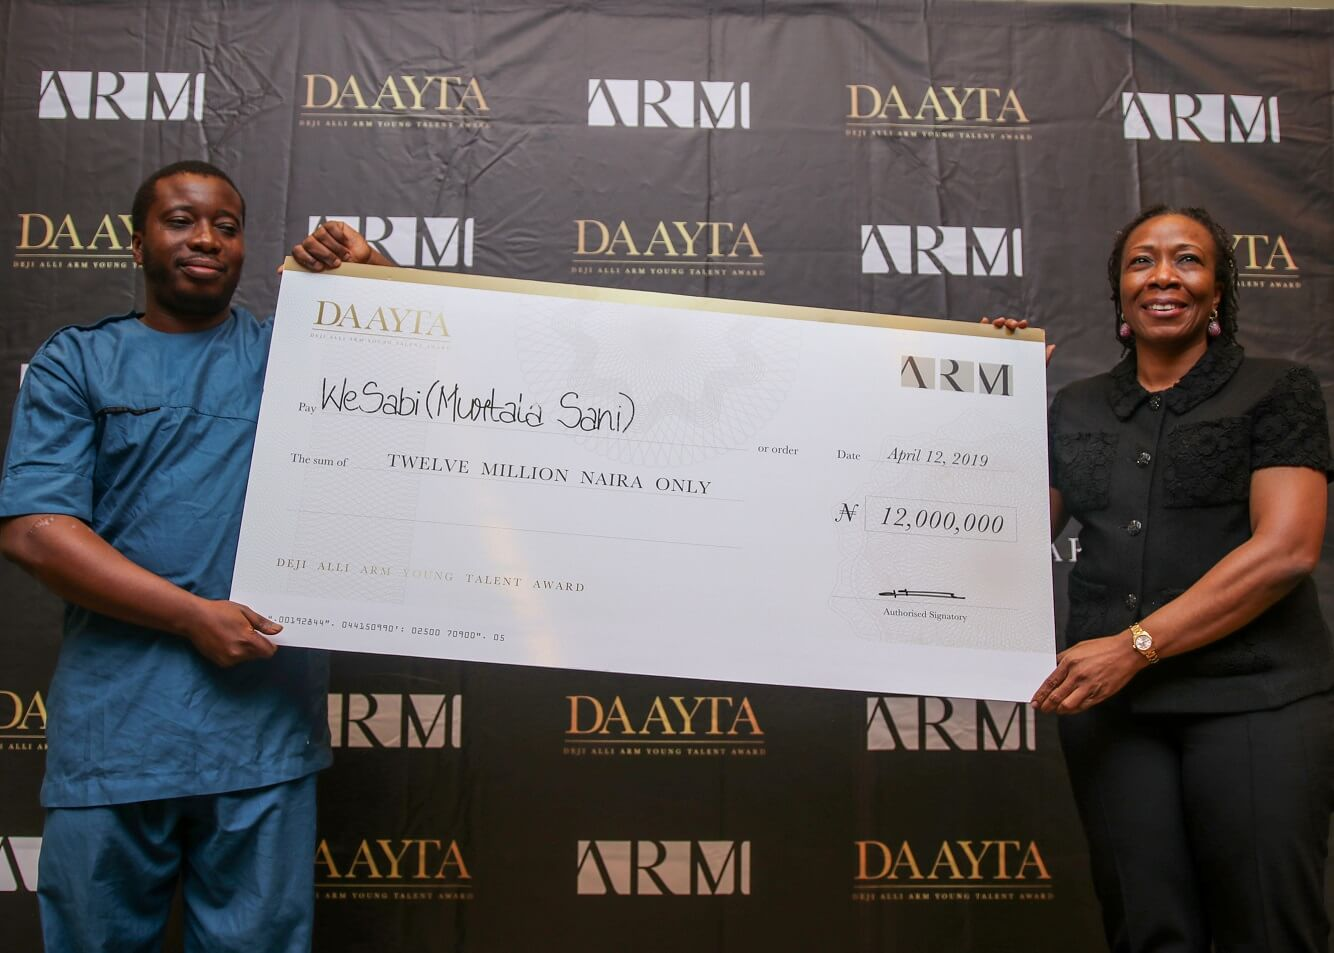 ARM gives back with DAAYTA 2019